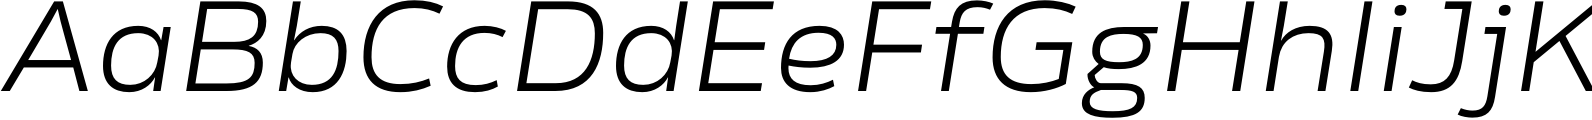 Rleud Extended Light Italic Font